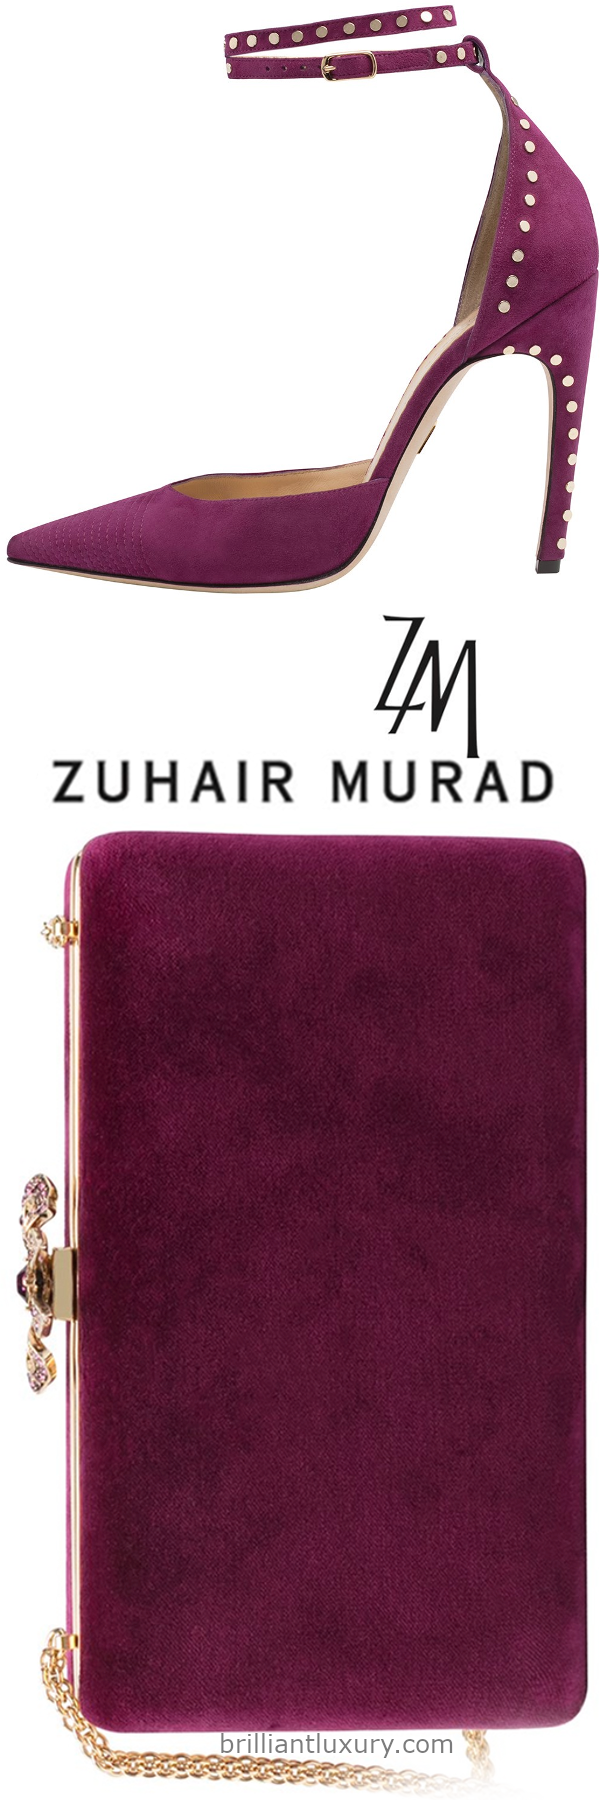 Zuhair Murad ankle strap sandal and velvet clutch in pink